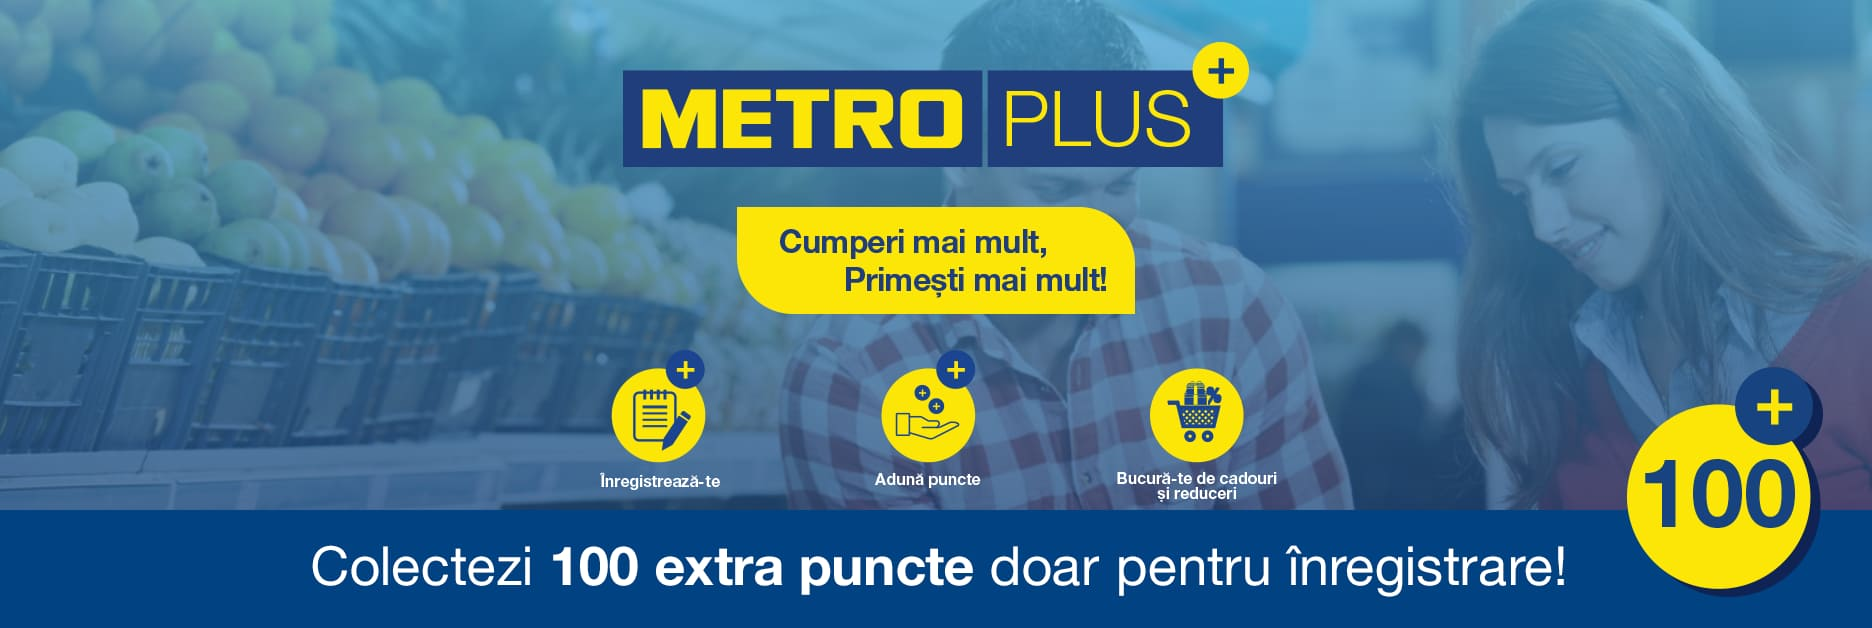 Metro Plus inregistrare